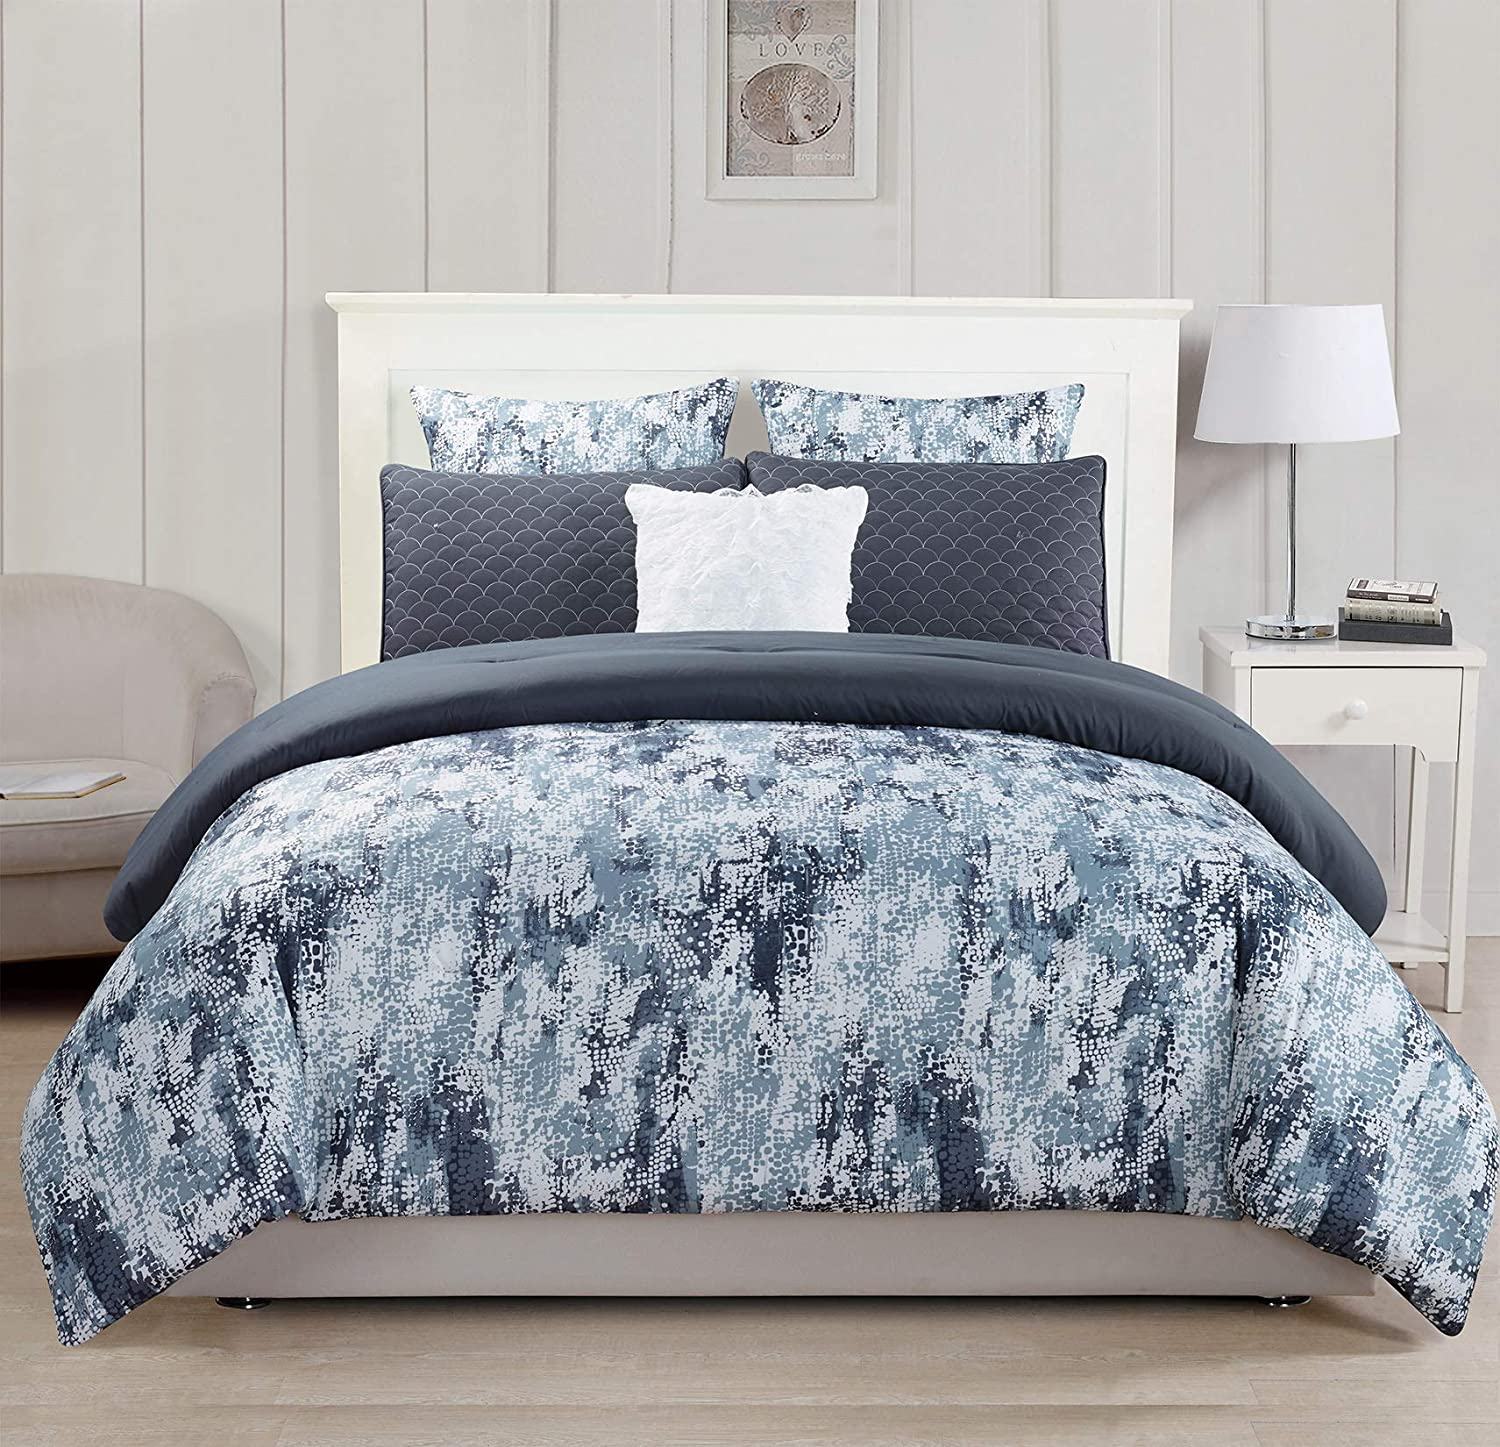 6PC Spring Flower with Leaves Printed Floral Oversize+Overfilled Comforter Set